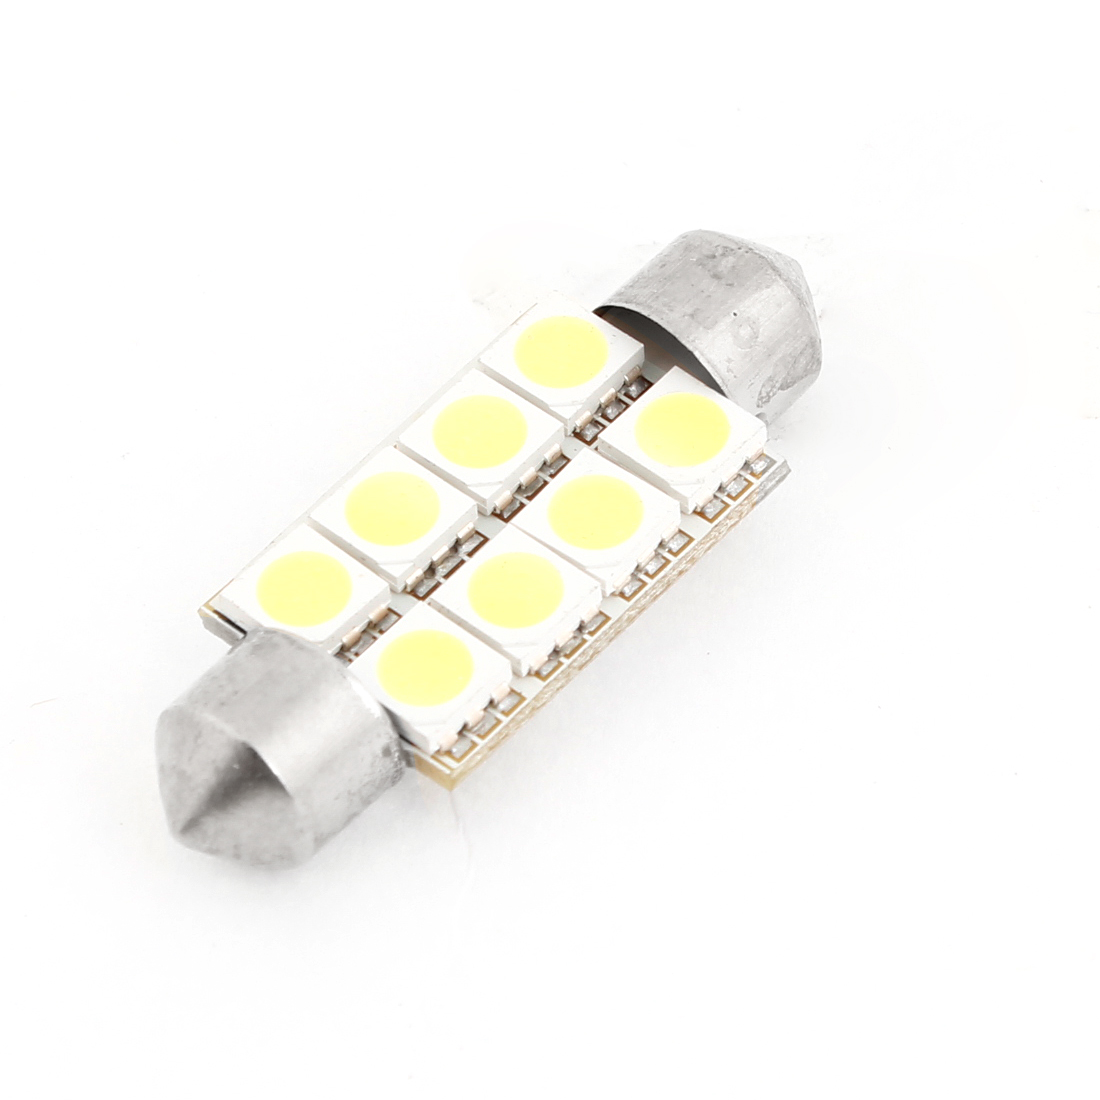 39mm Festoon 8 White 5050 SMD LED Interior Lamp for Auto Car internal